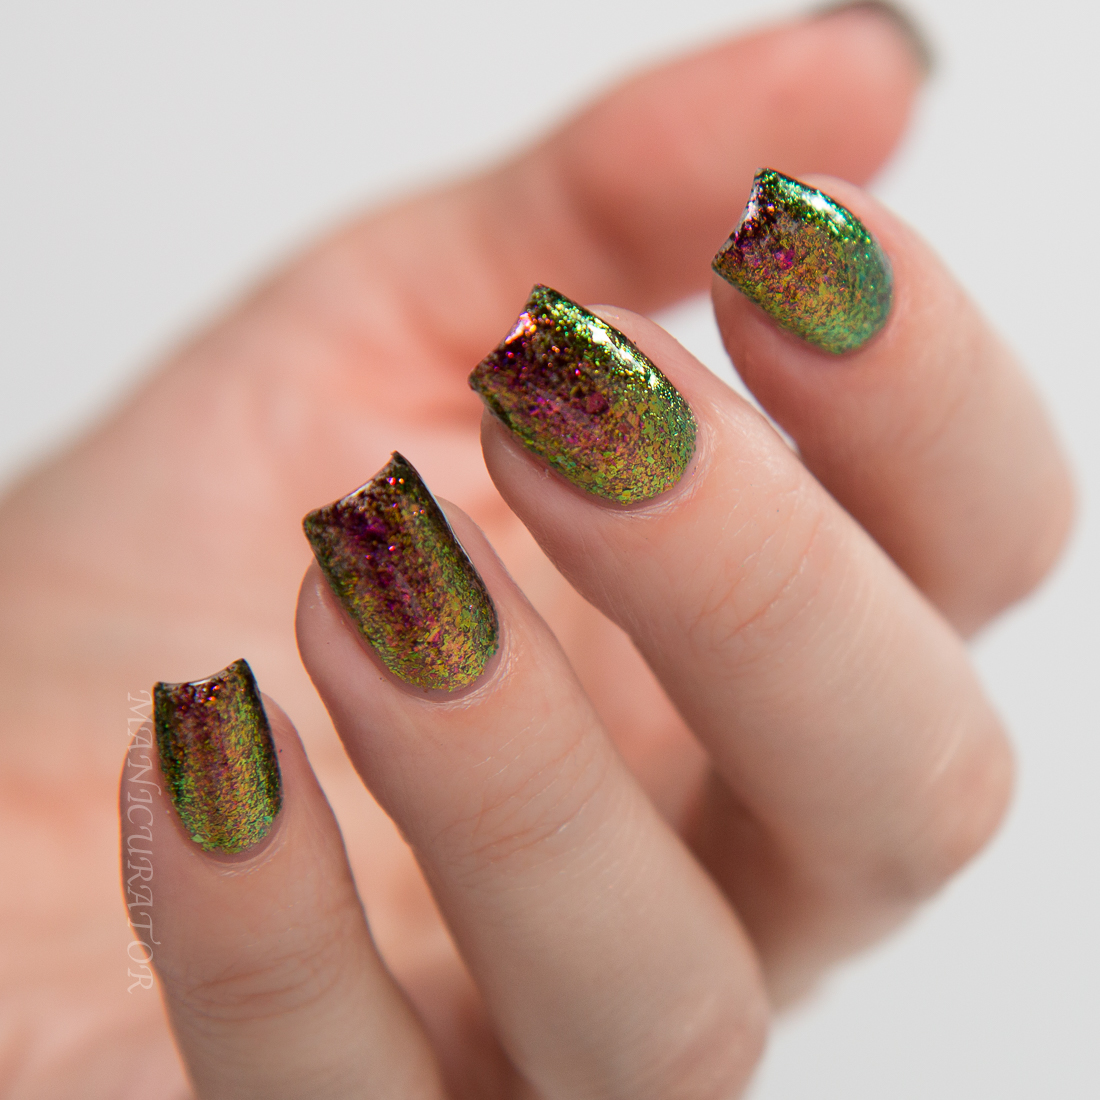 KBShimmer Summer 2015 Collection Part 3 - Flakes | Manicurator ...